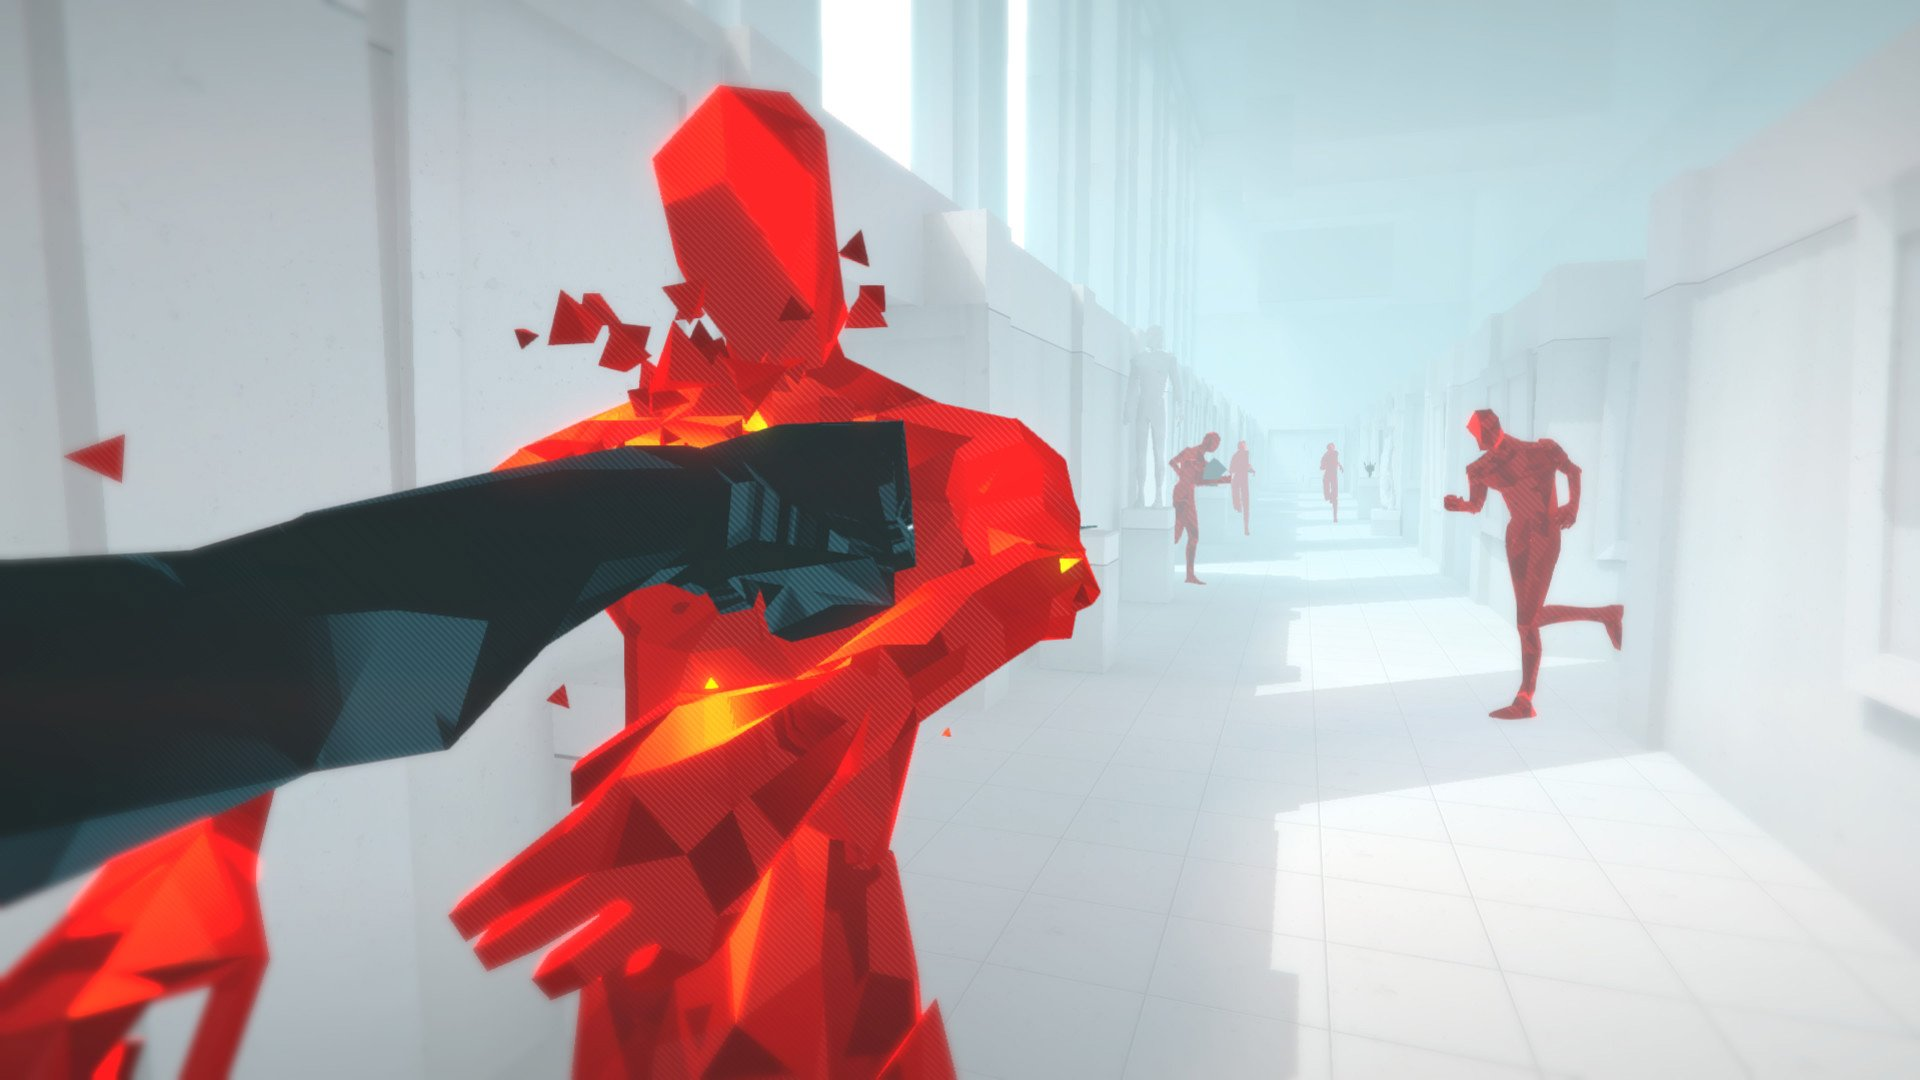 Oxenfree, Superhot, and Shadow Tactics will be free for Twitch Prime users this month screenshot